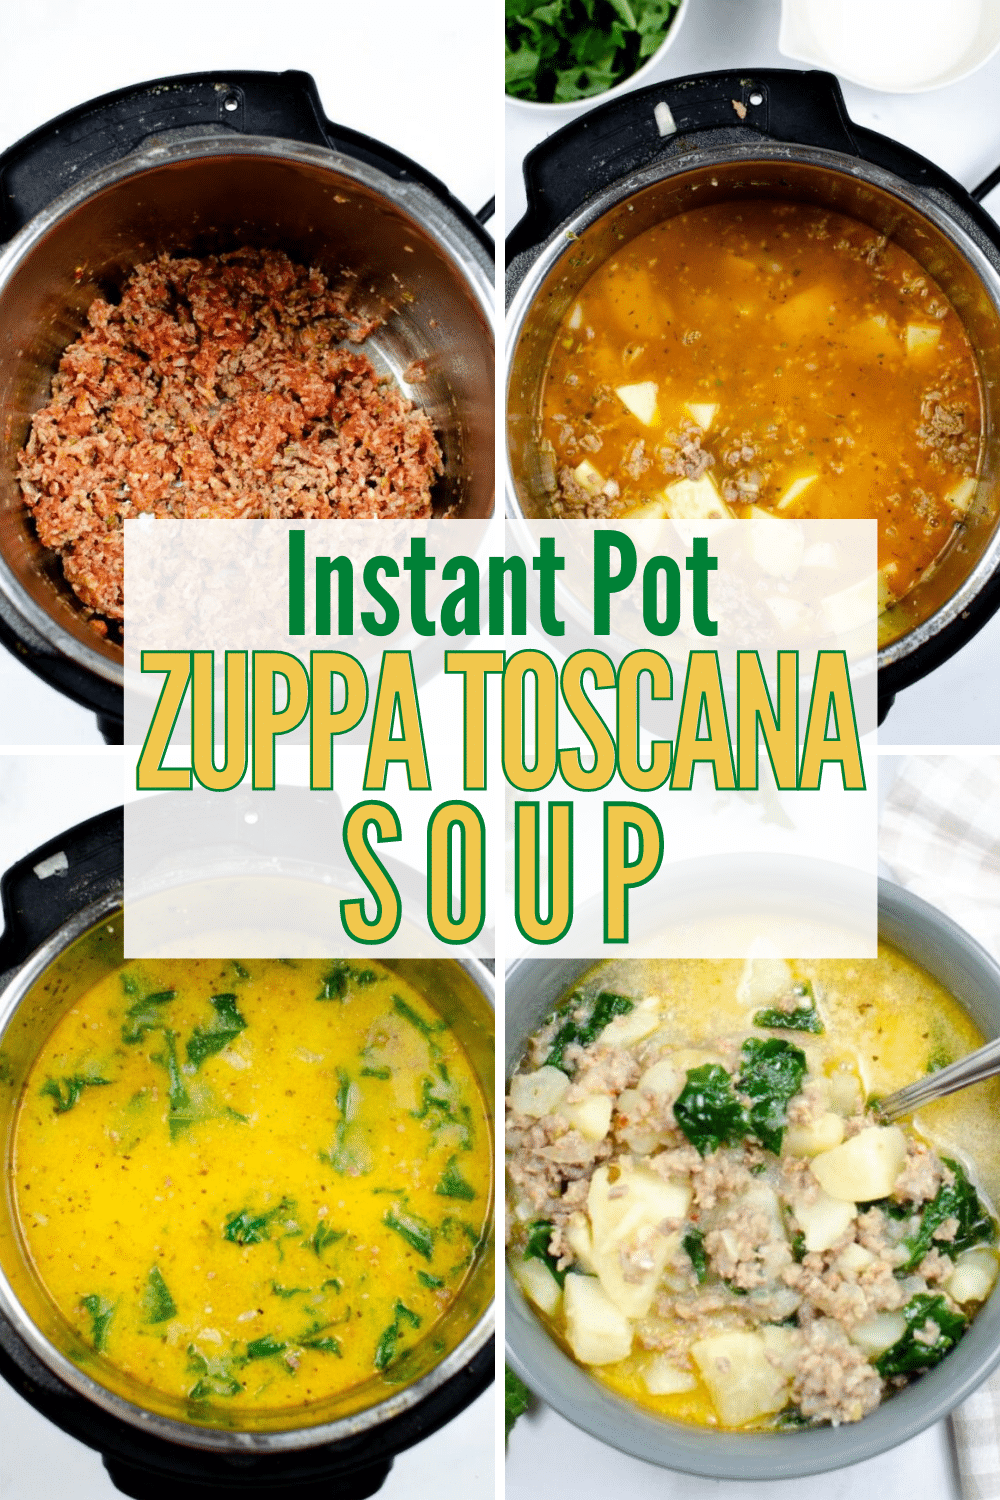 You're going to love this Instant Pot Zuppa Toscana. You can make this Olive Garden favorite right at home in your pressure cooker! #instantpot #soup #recipe via @wondermomwannab